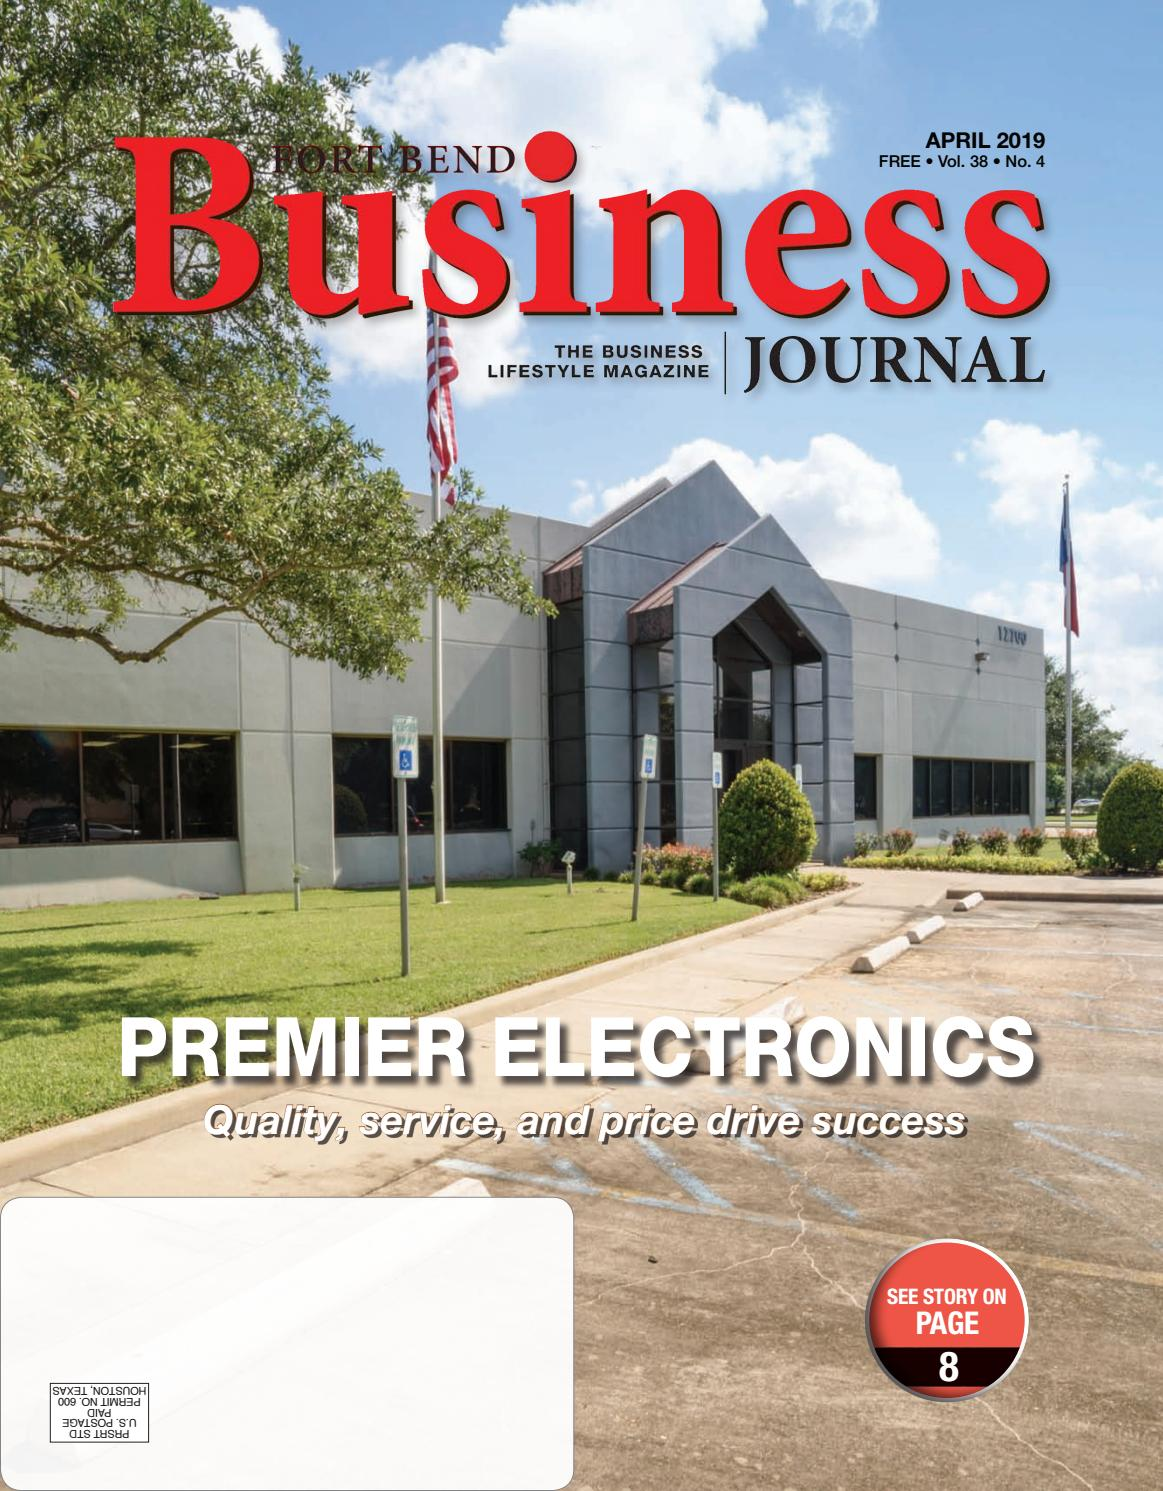 Fort Bend Business Journal April 2019 Edition by Sugar Land